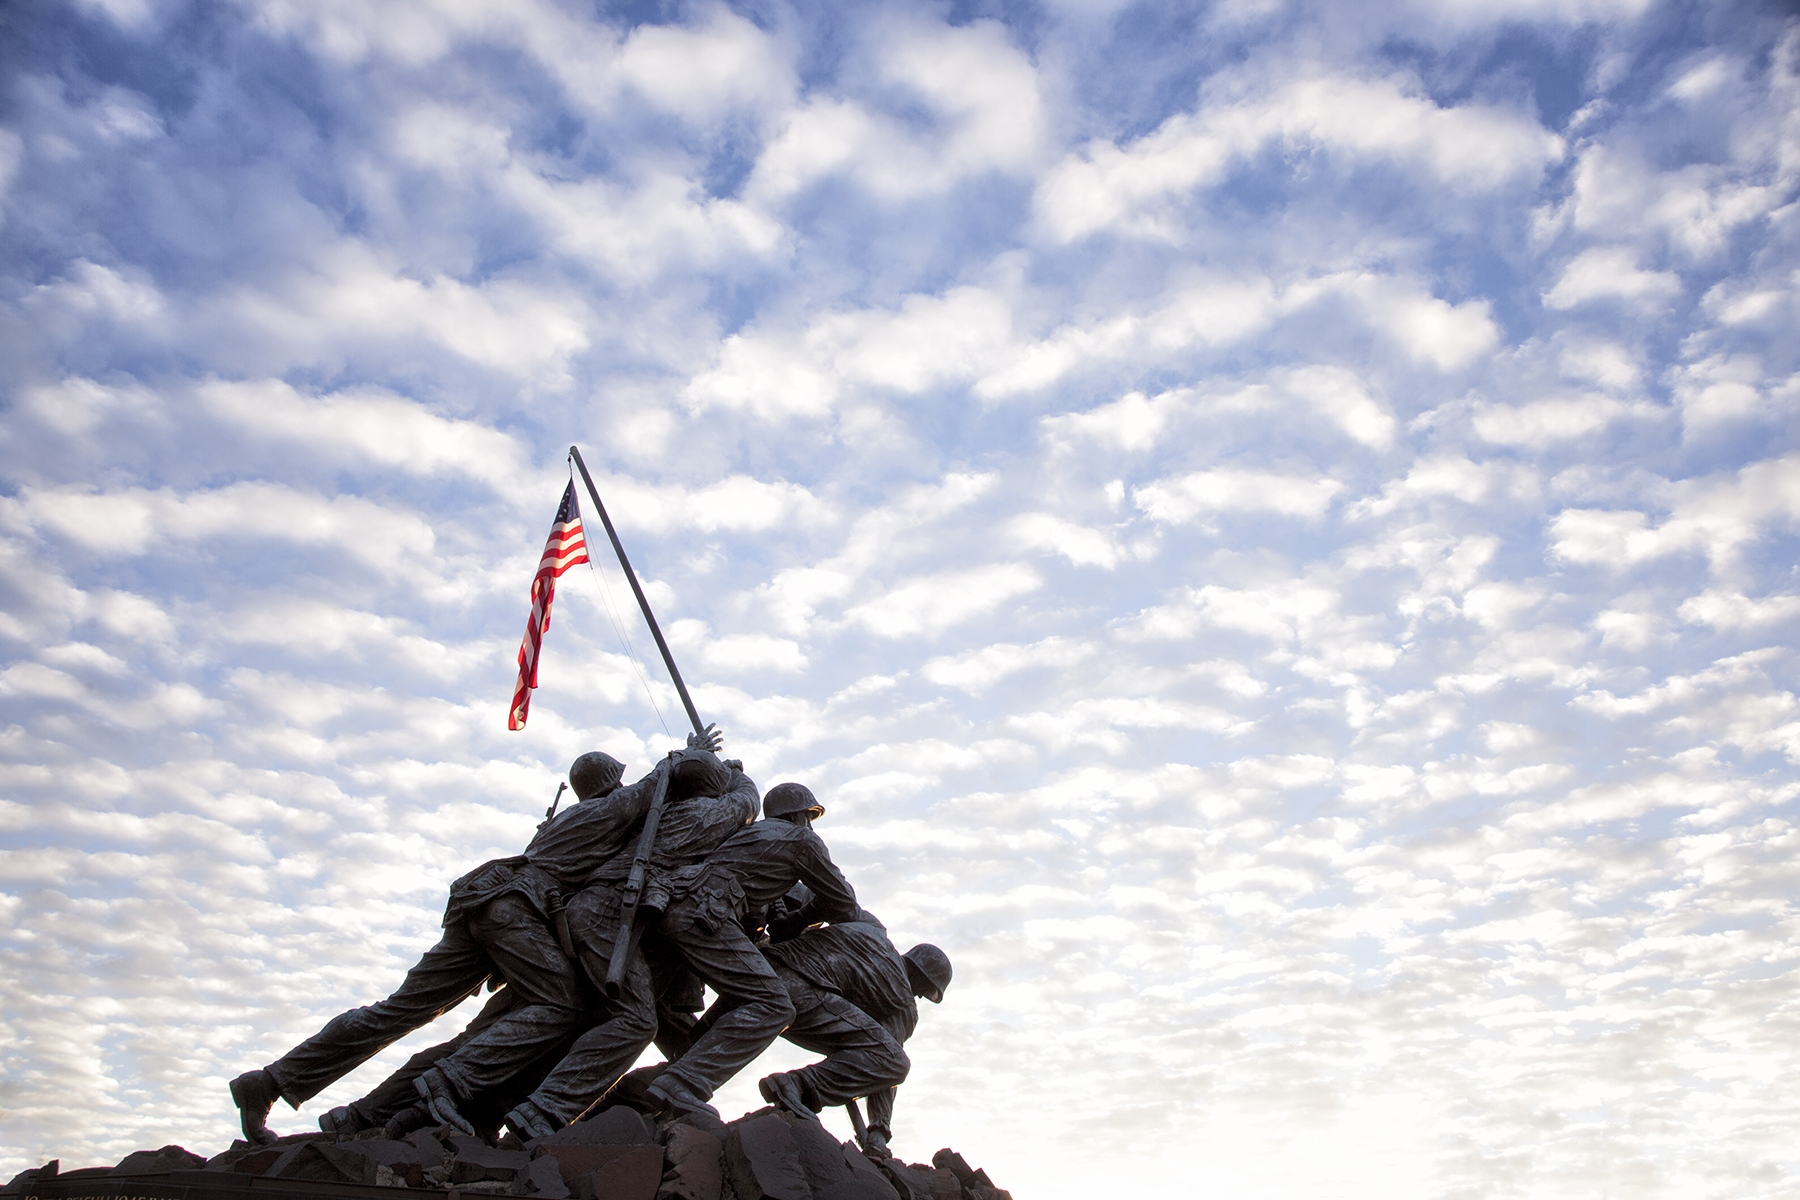 sunrise, clouds, iwo jima, marine corp memorial, american flag, clouds, virginia, va, rosslyn, washington dc,